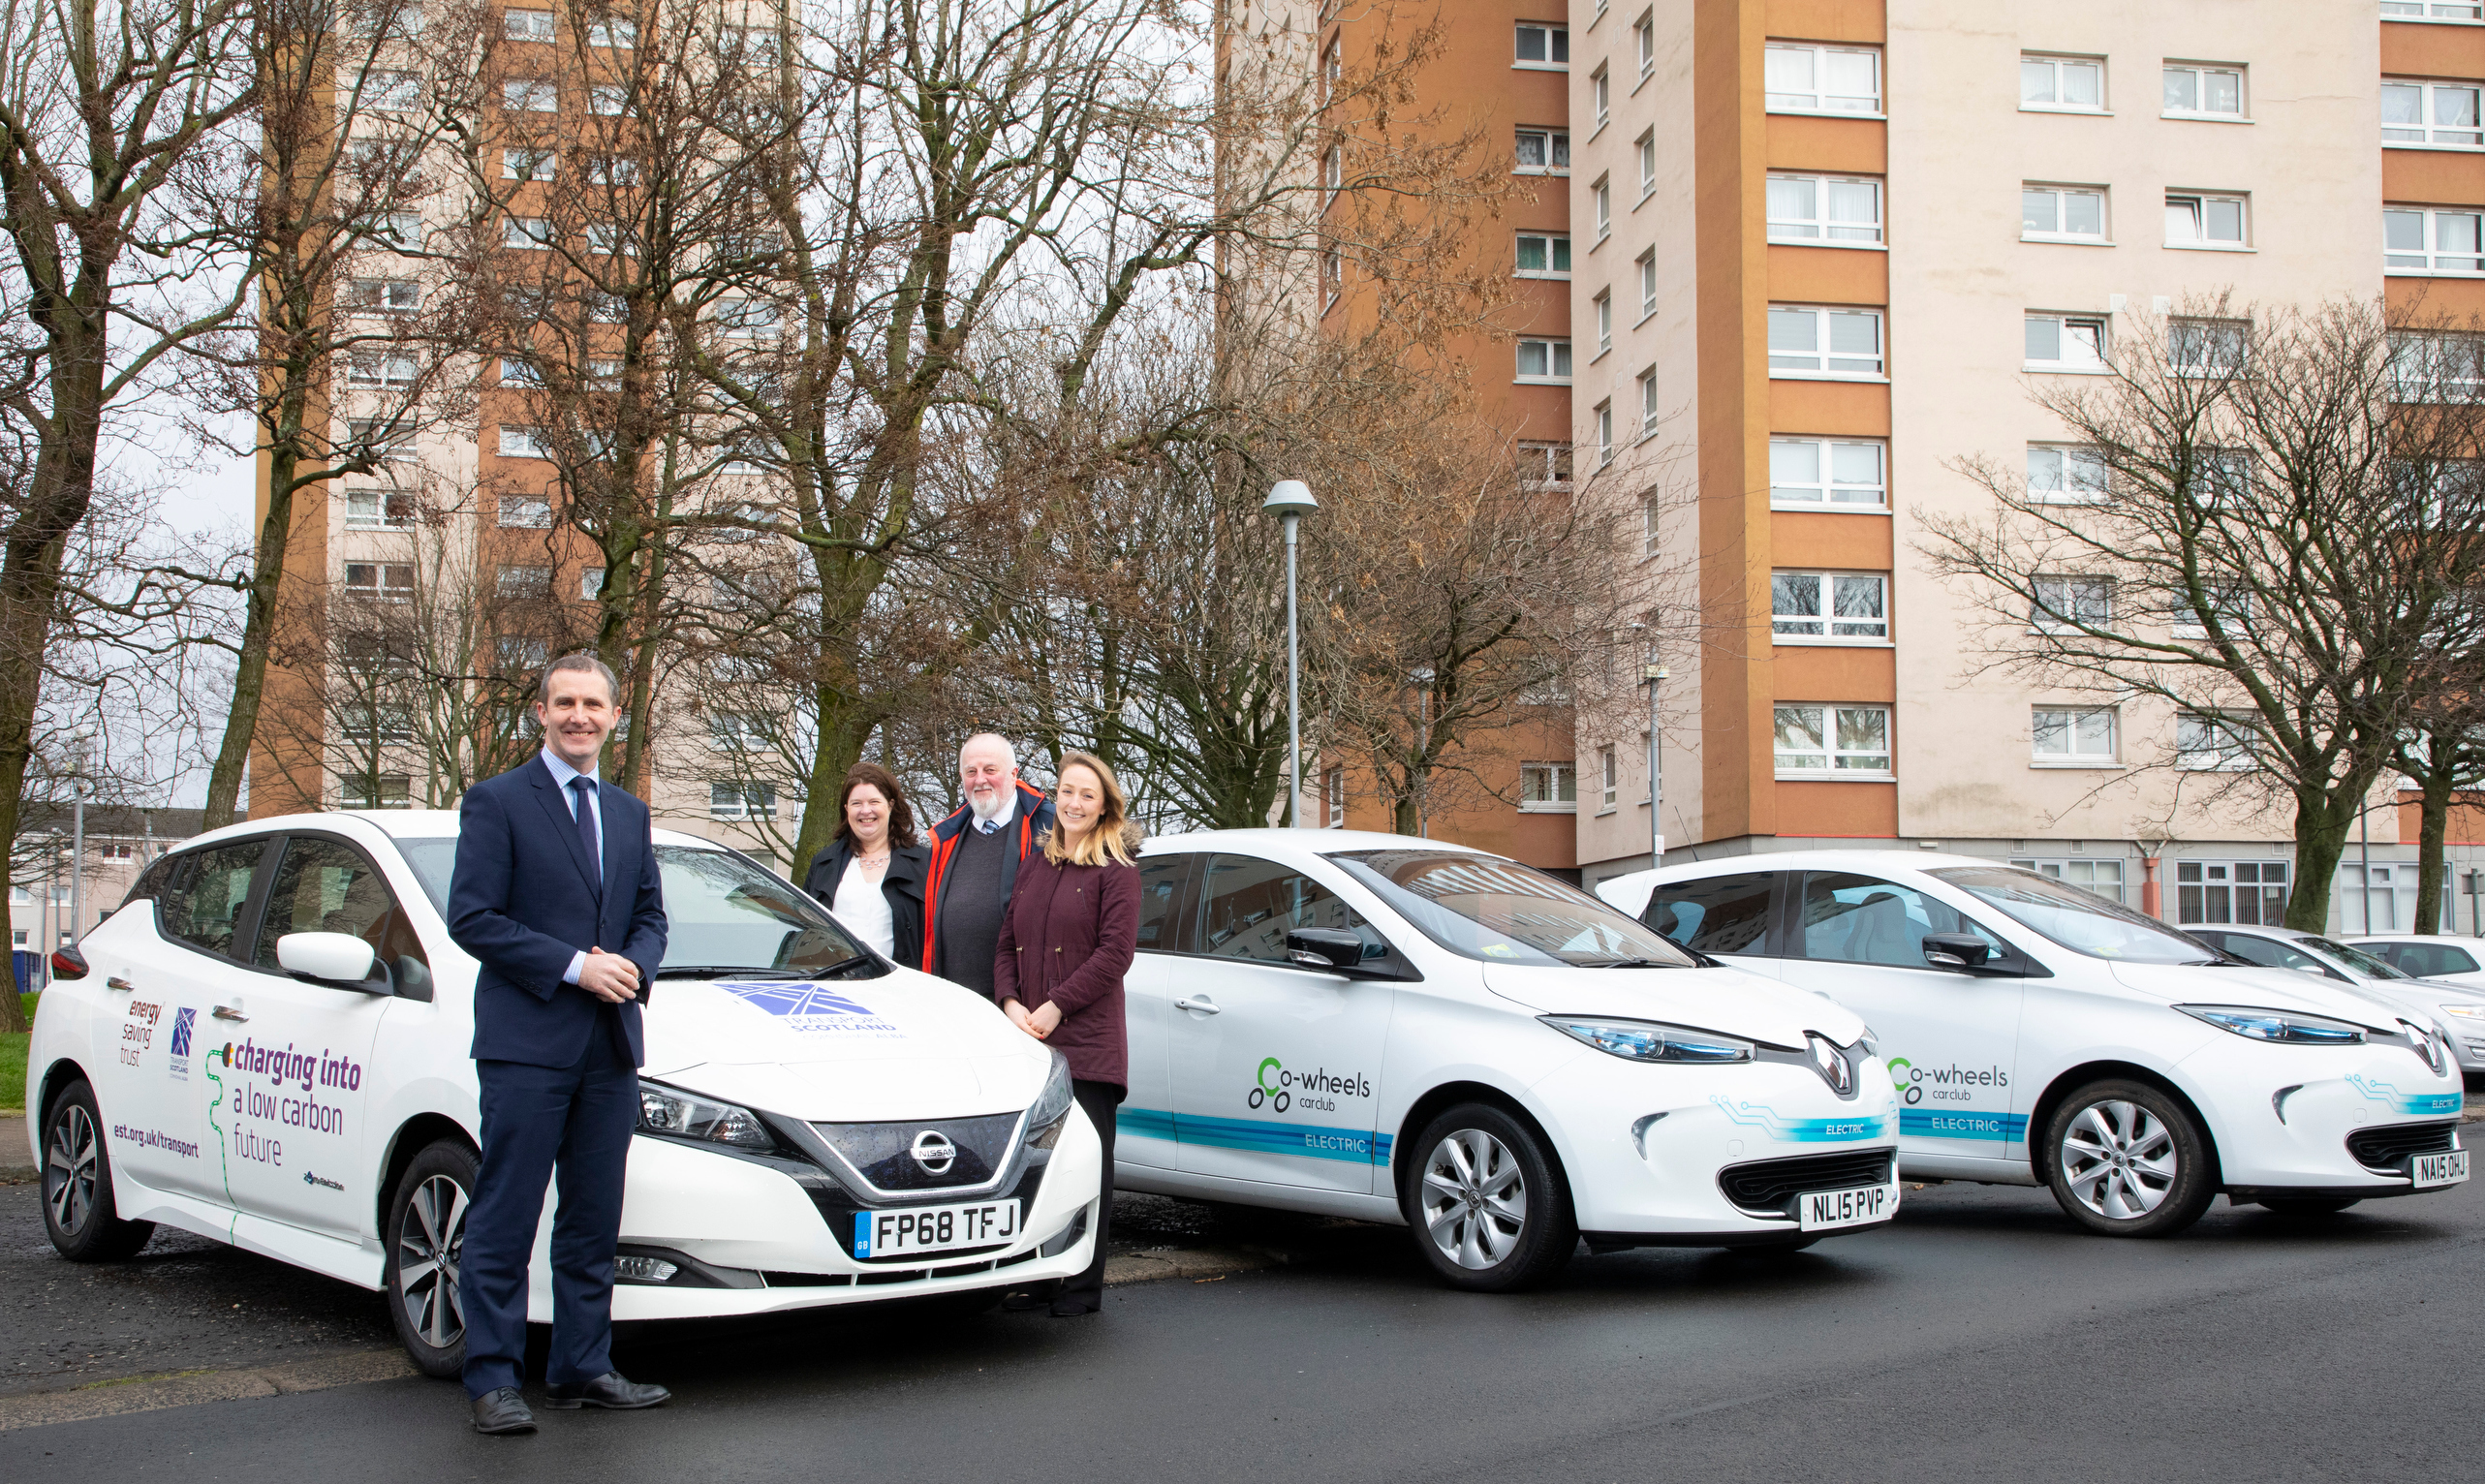 From Left Transport Secretary Michael Matheson Evelyn Mcdowall Director Of Group Ets At Wheatley Tony Archer Co Wheels And Ellie Grebenik